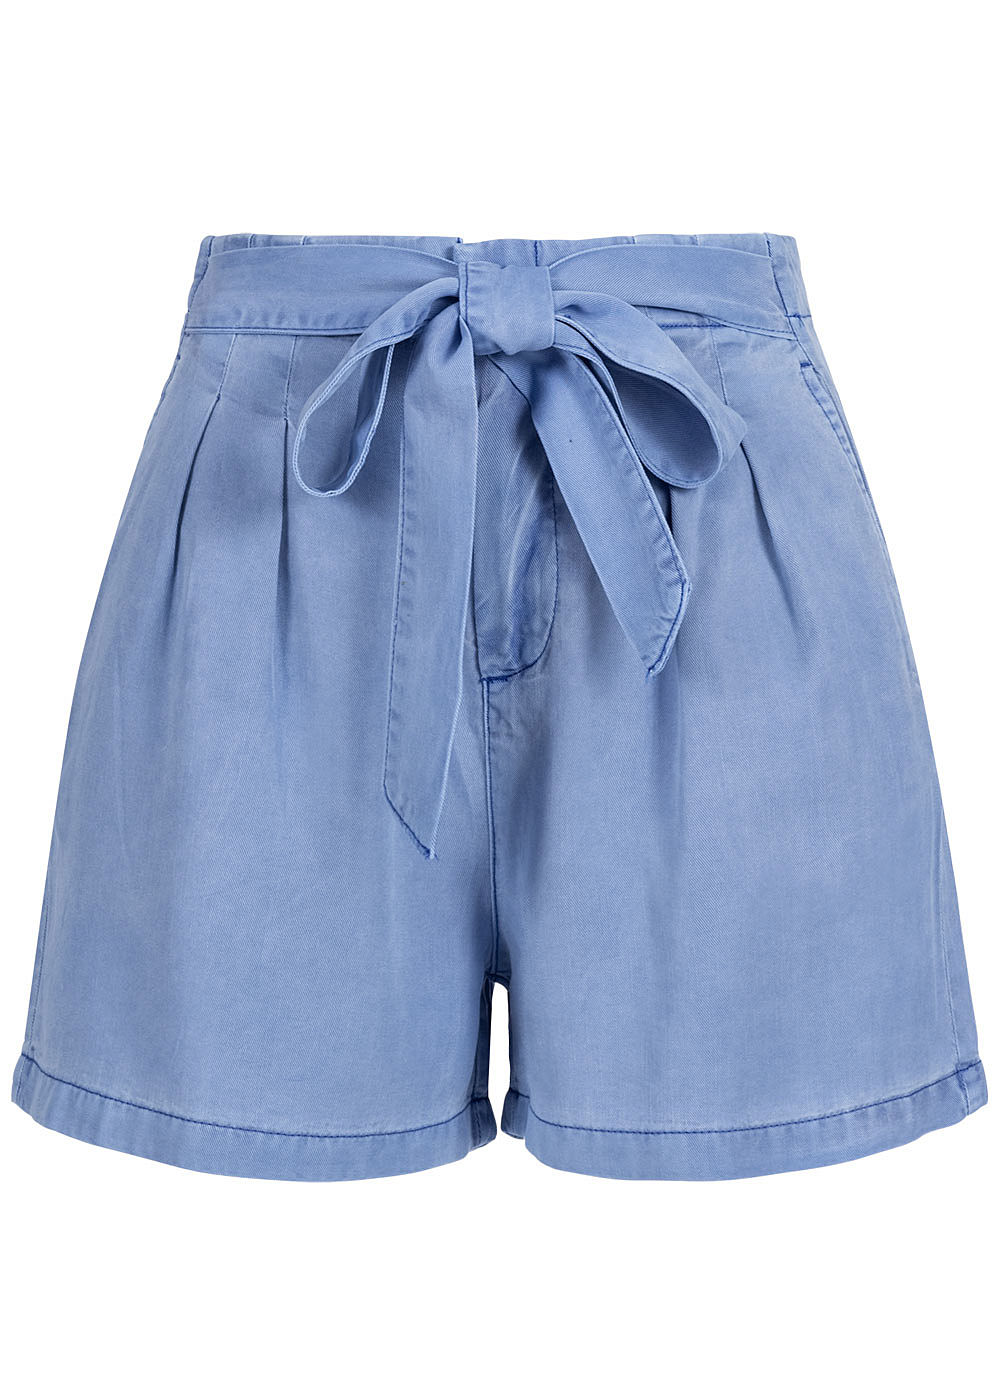 Vero Moda Damen Belted Loose Summer Denim Shorts 2-Pockets granada sky blau - Art.-Nr.: 19072725